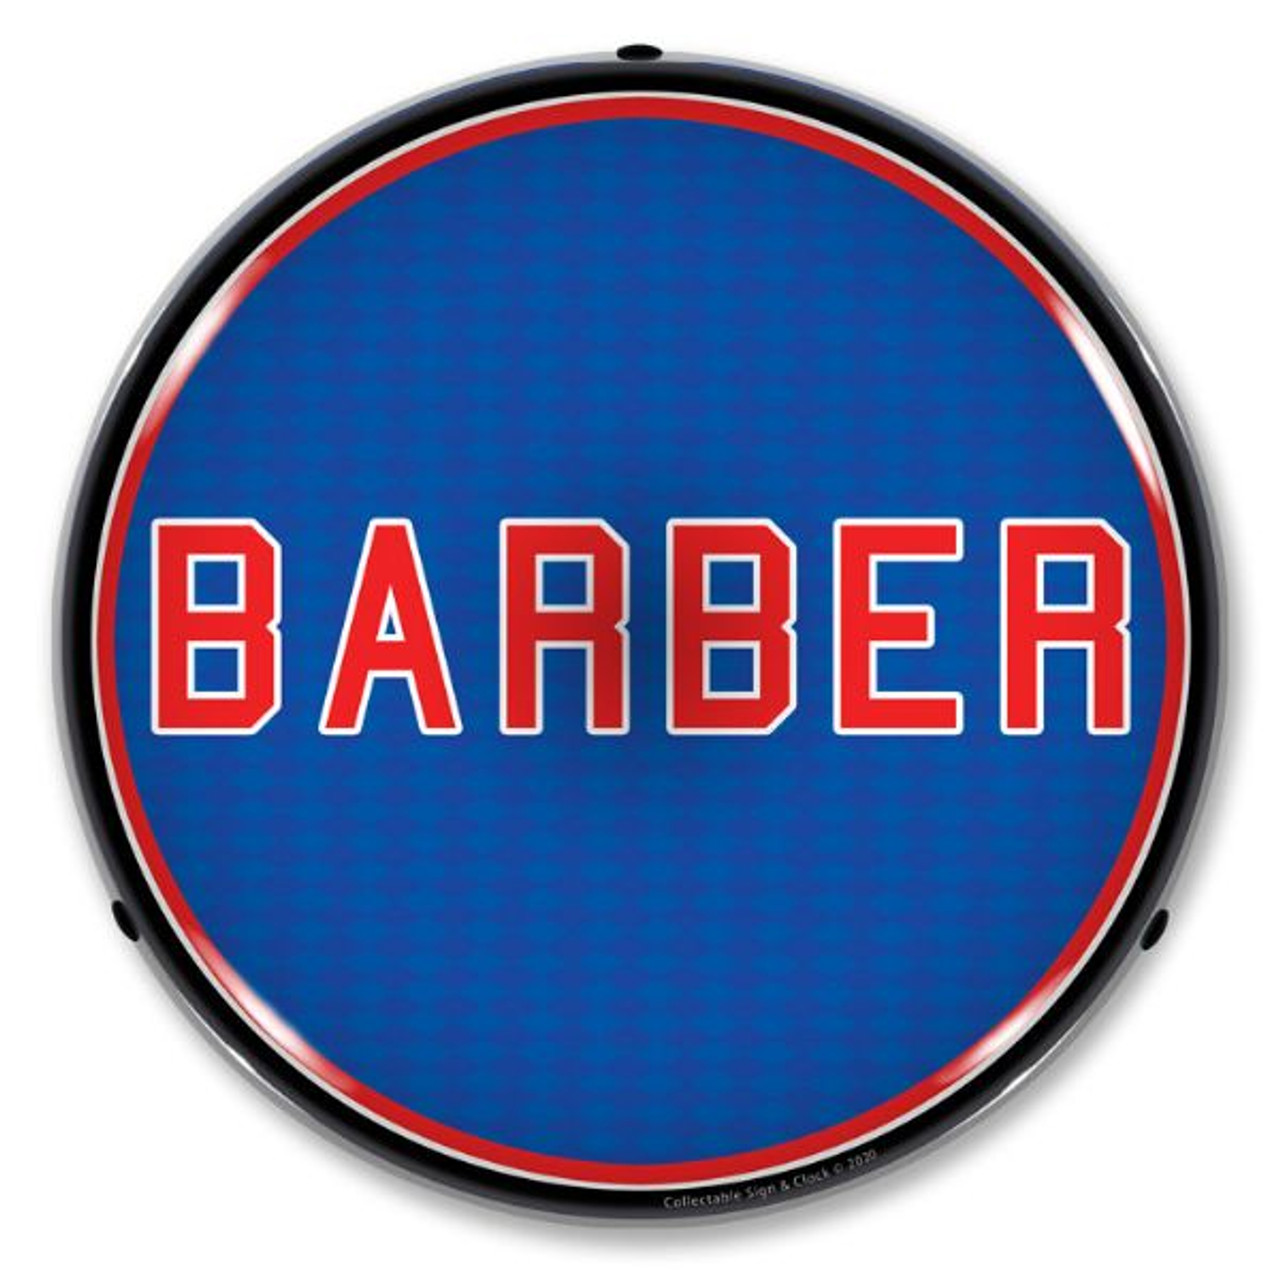 Barber LED Lighted Business Sign 14 x 14 Inches